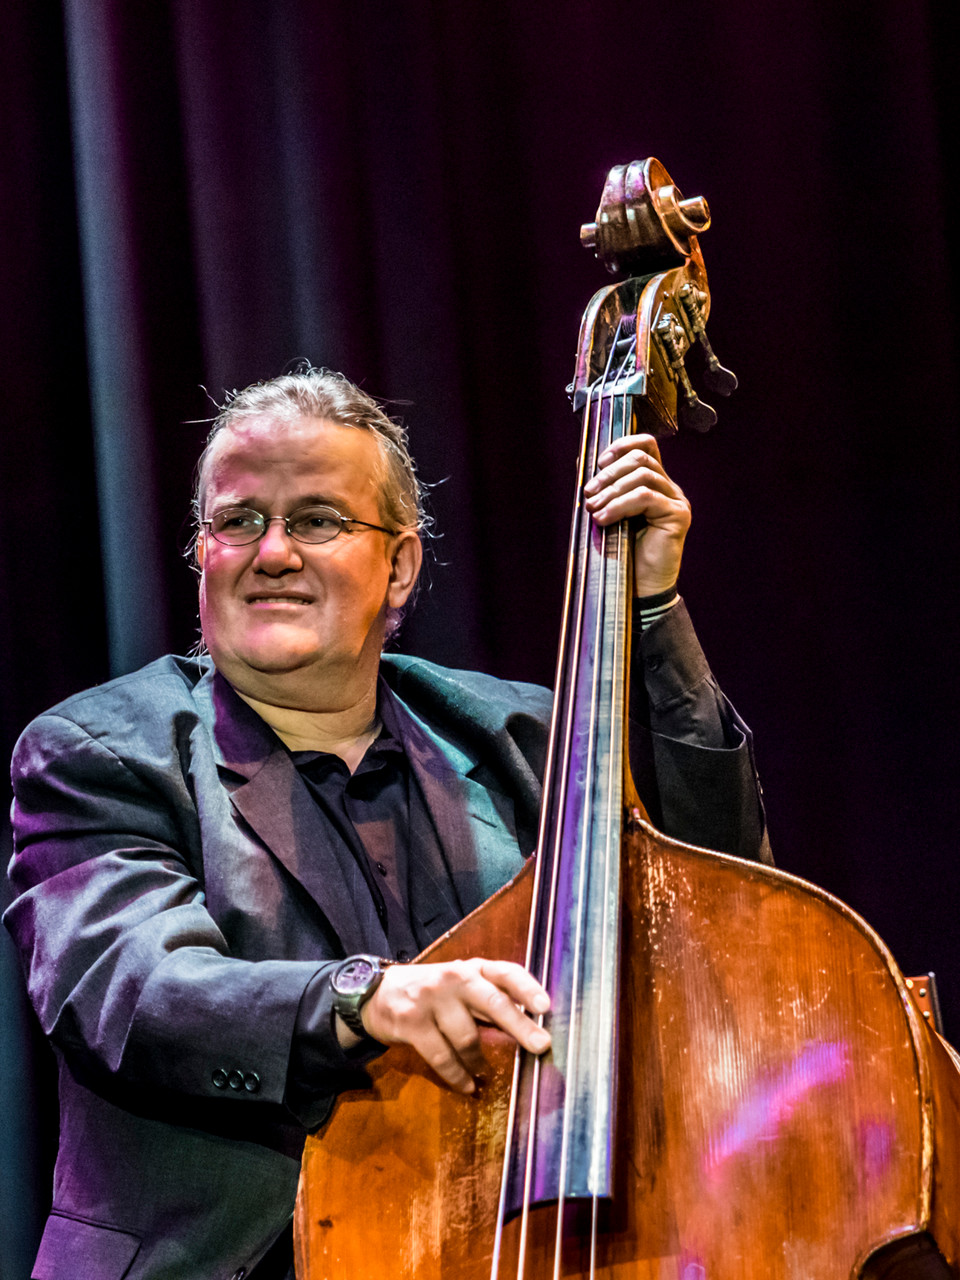 Big Easy in Concert, Stadthalle - Paul G. Ulrich (Jan Luley Trio)